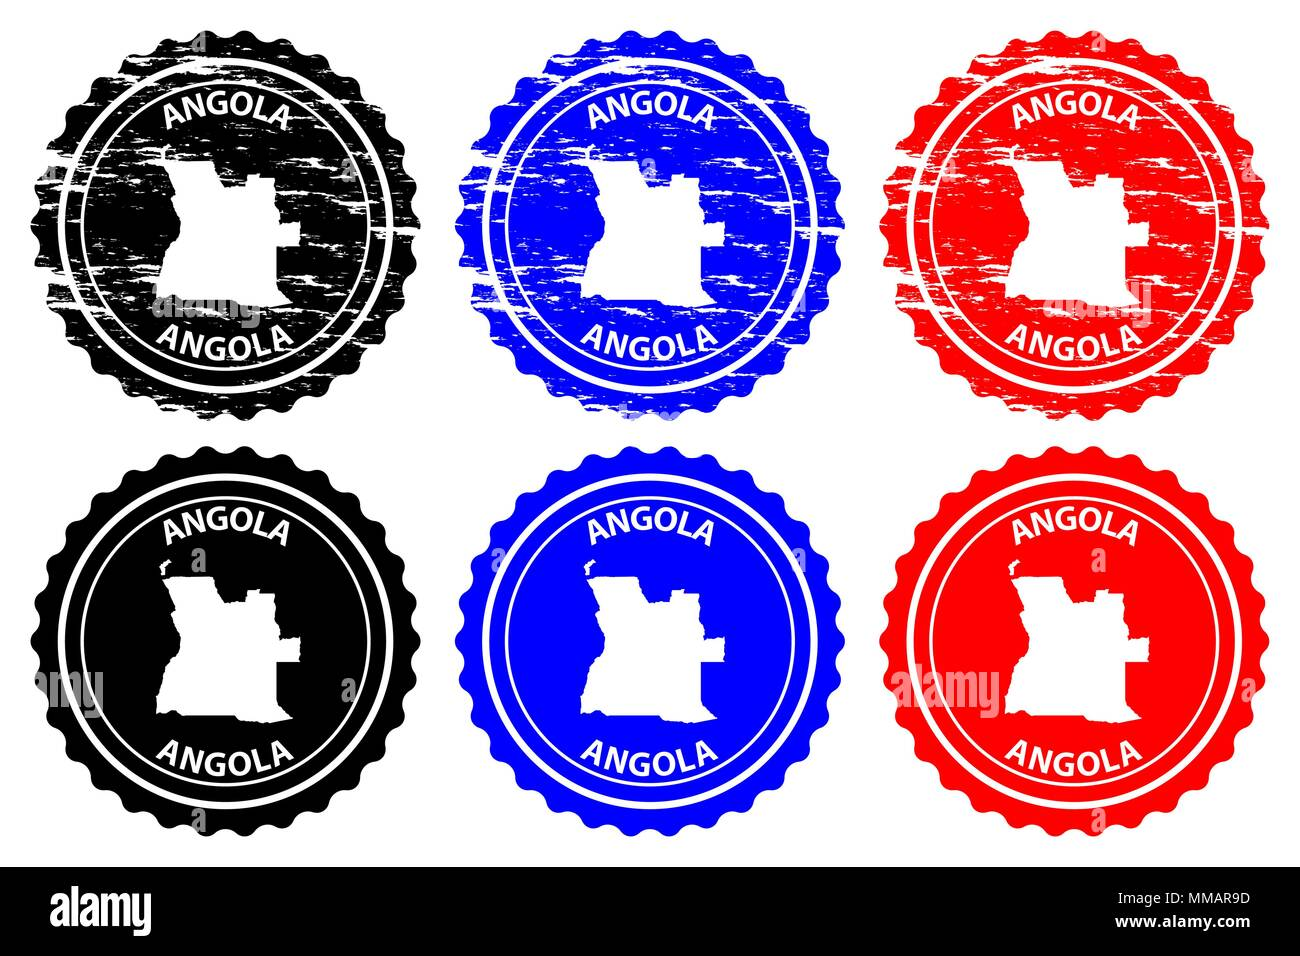 Angola - rubber stamp - vector, Angola map pattern - sticker - black, blue and red - Stock Vector